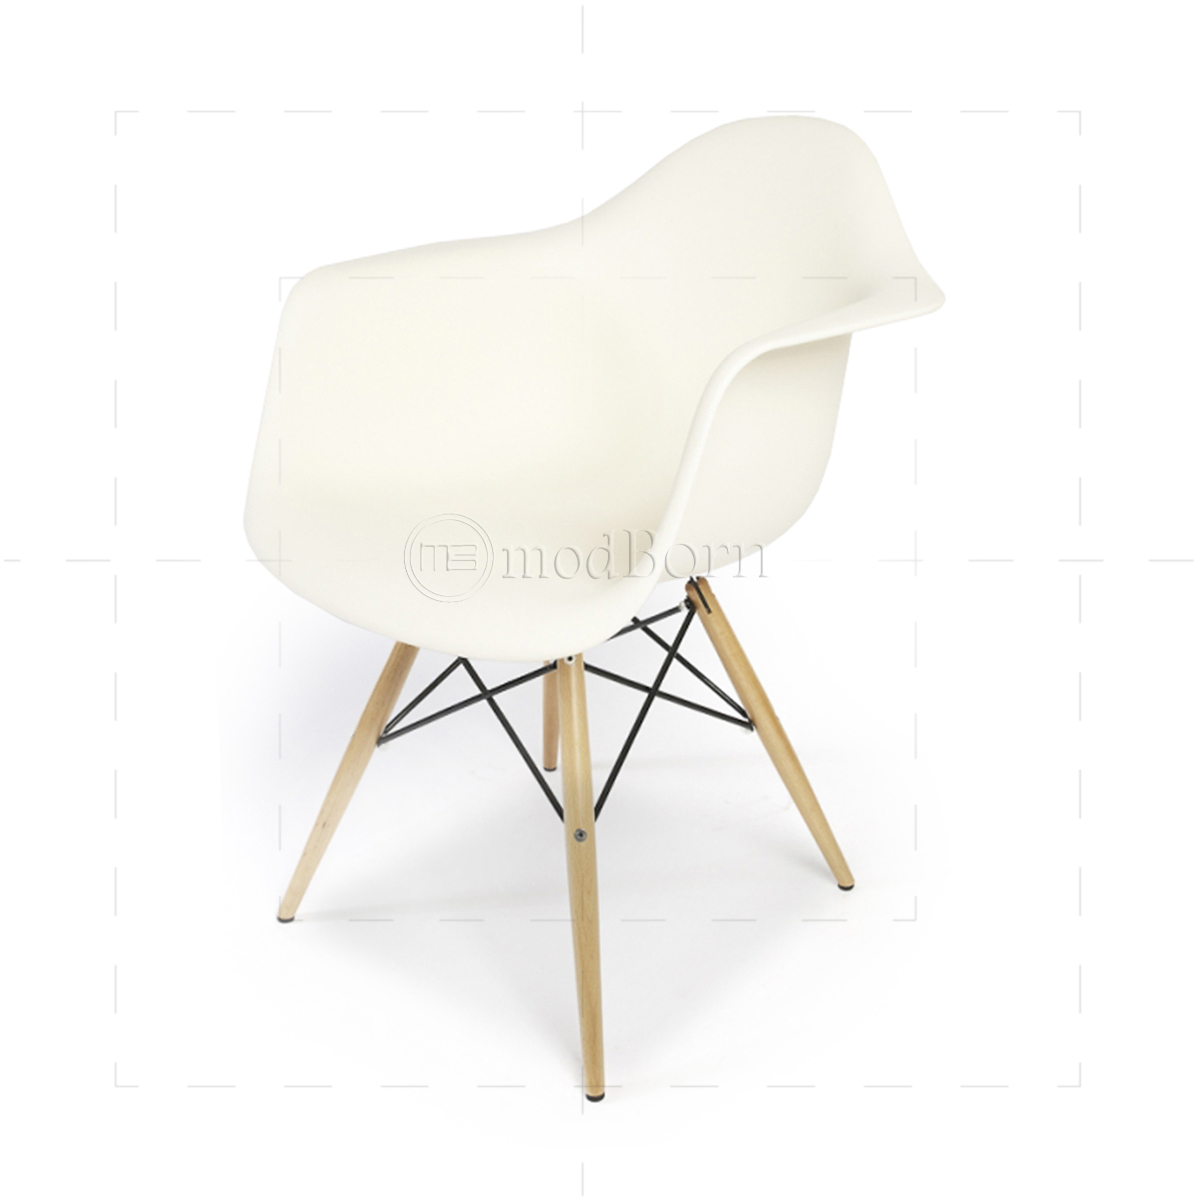 Eames style dining daw arm chair white replica for Eames chair replica uk